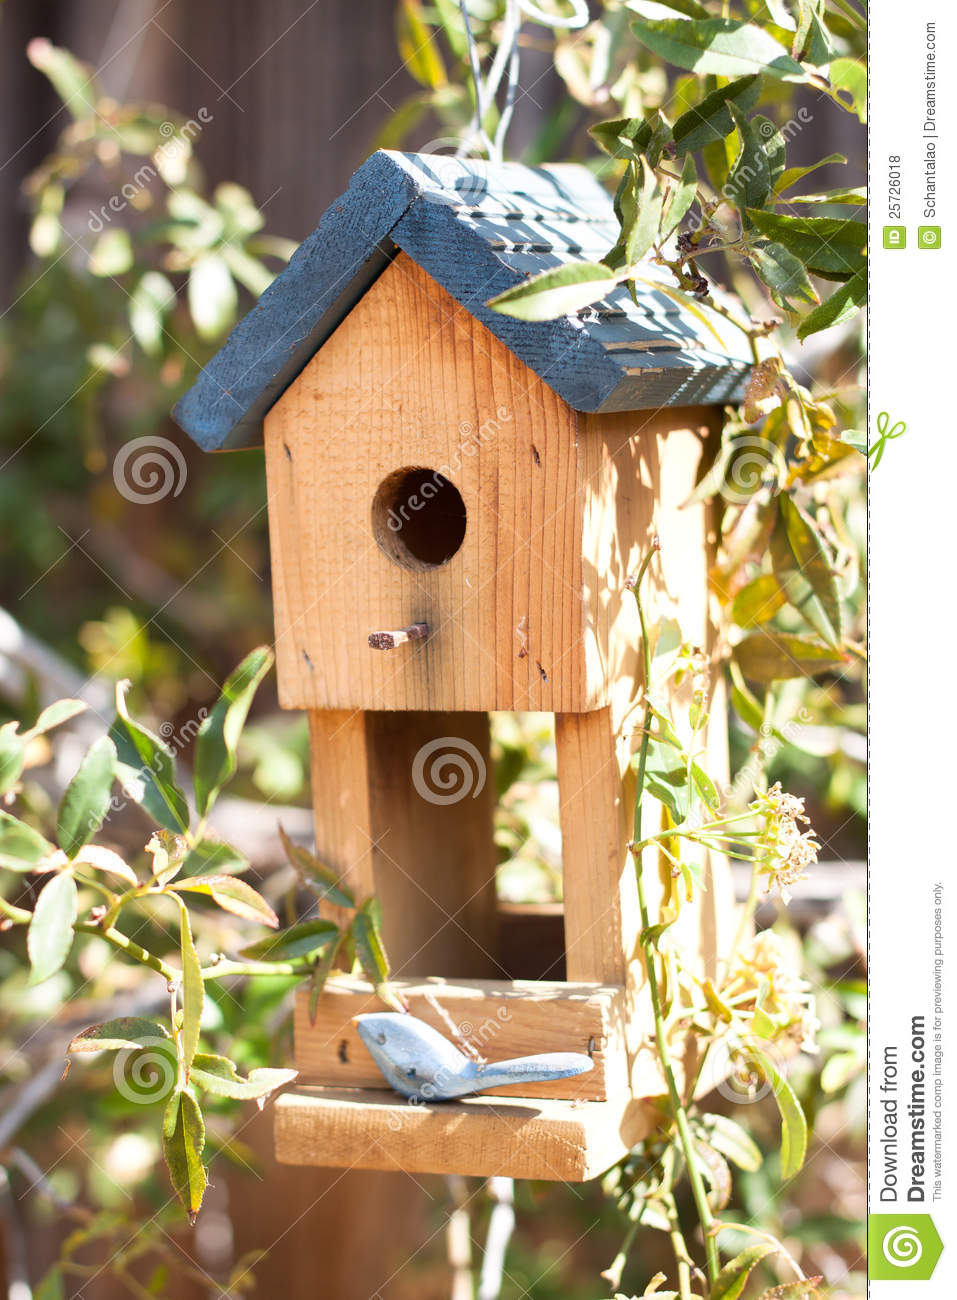 Cute Bird House In Garden Stock Photo Image Of Birdhouse